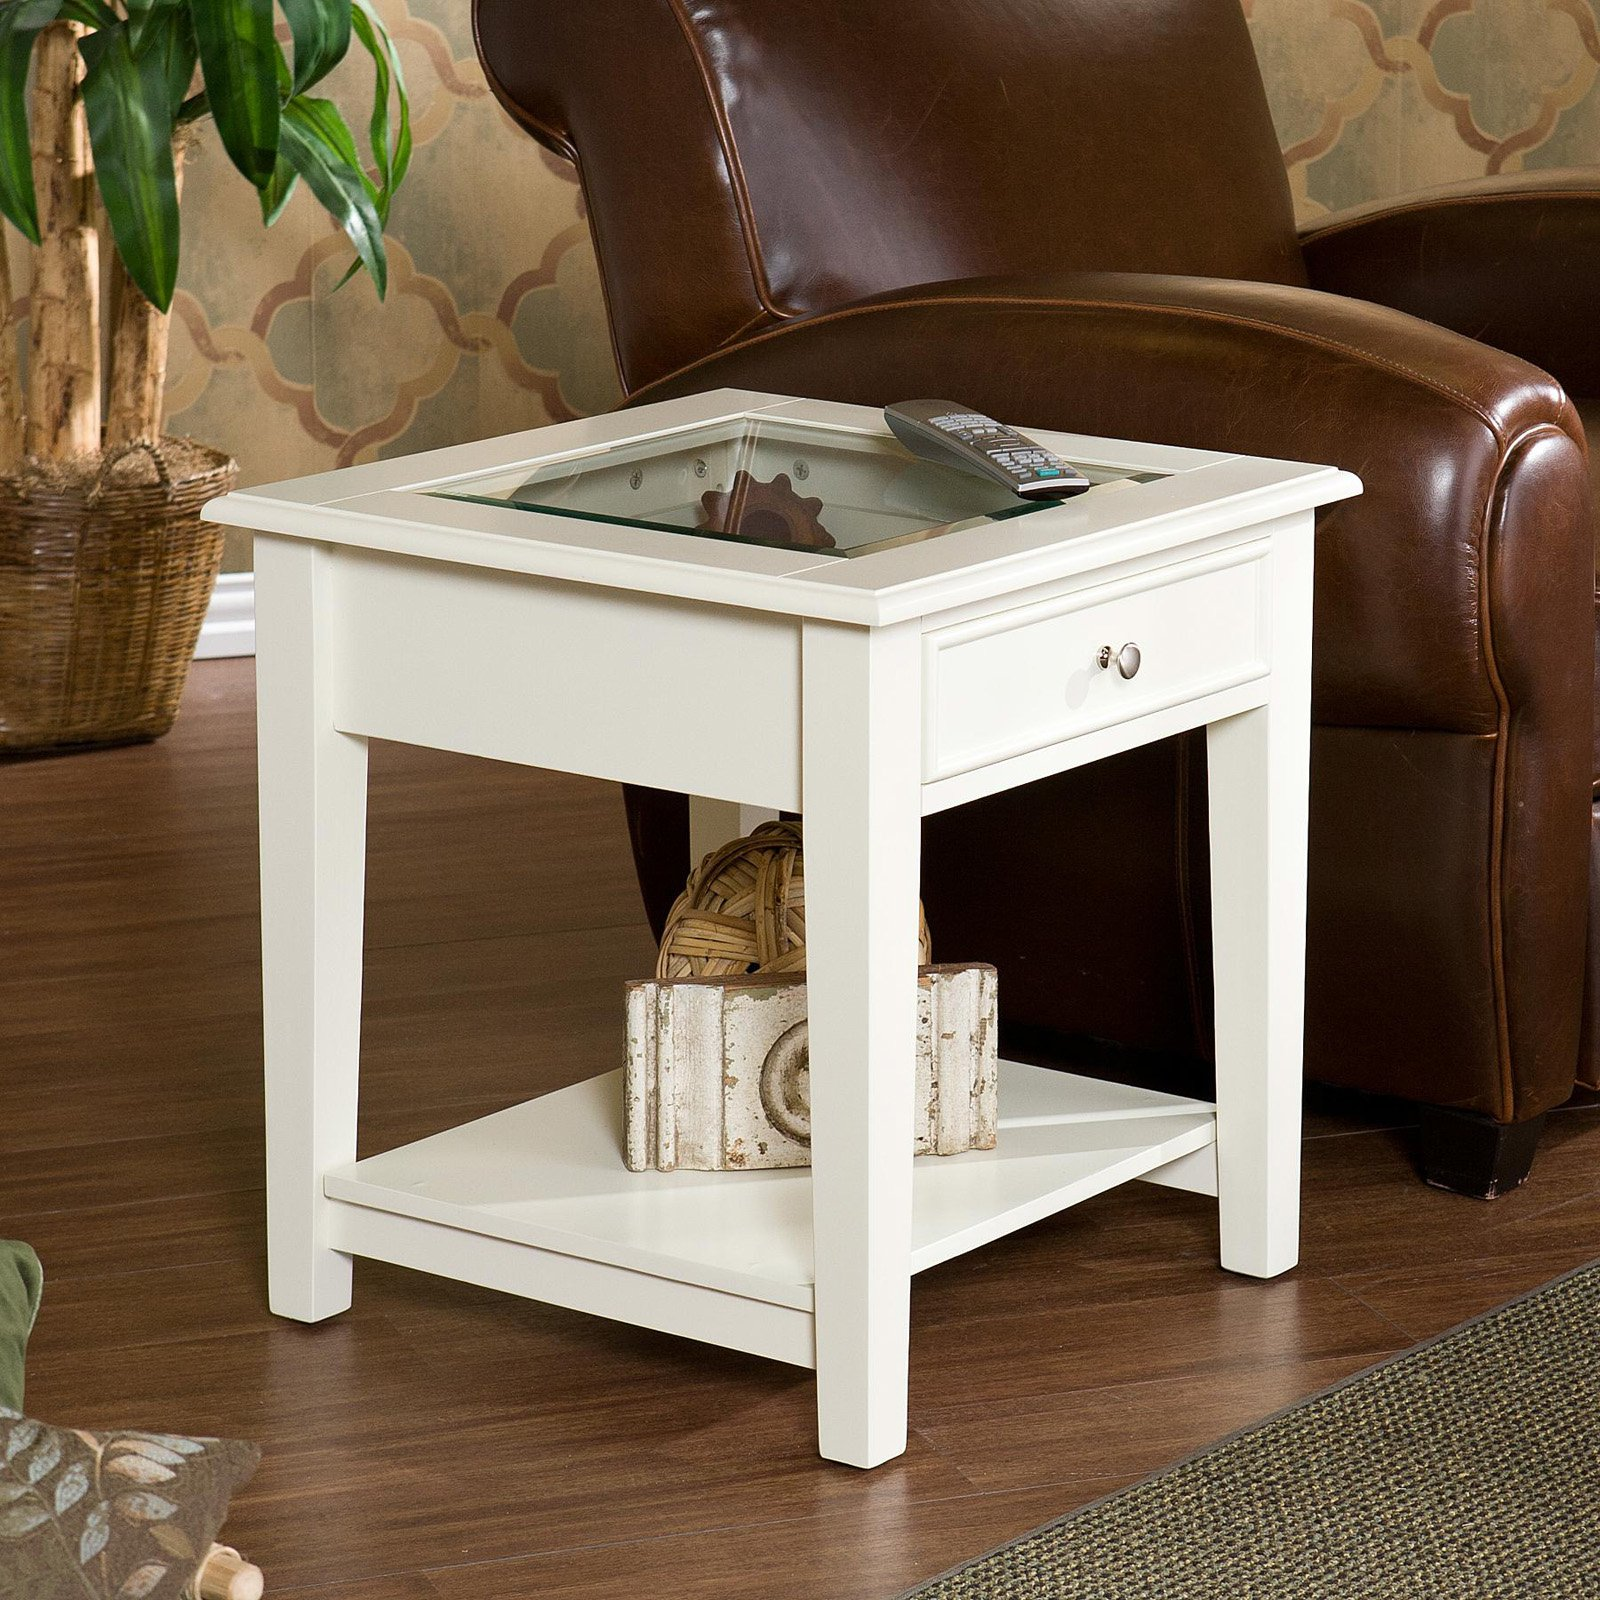 southern enterprises panorama end table off white tables furniture round plastic outdoor dog kennel side fancy pet crates sofa made from pallets coffee with shelf circular patio